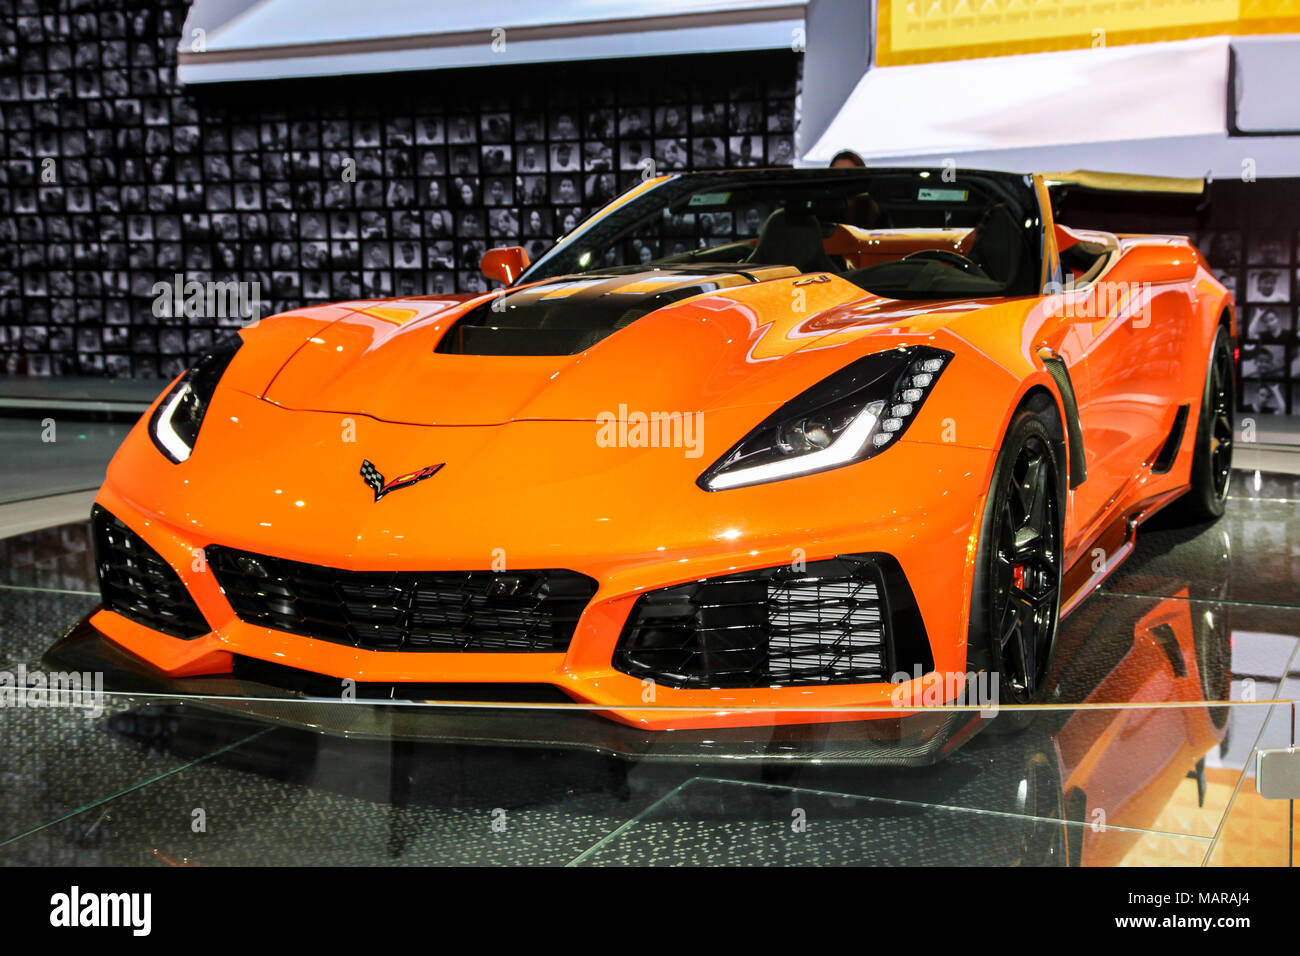 New York City Th Mar Chevrolet Corvette ZR Shown At The - Jacob javits center car show 2018